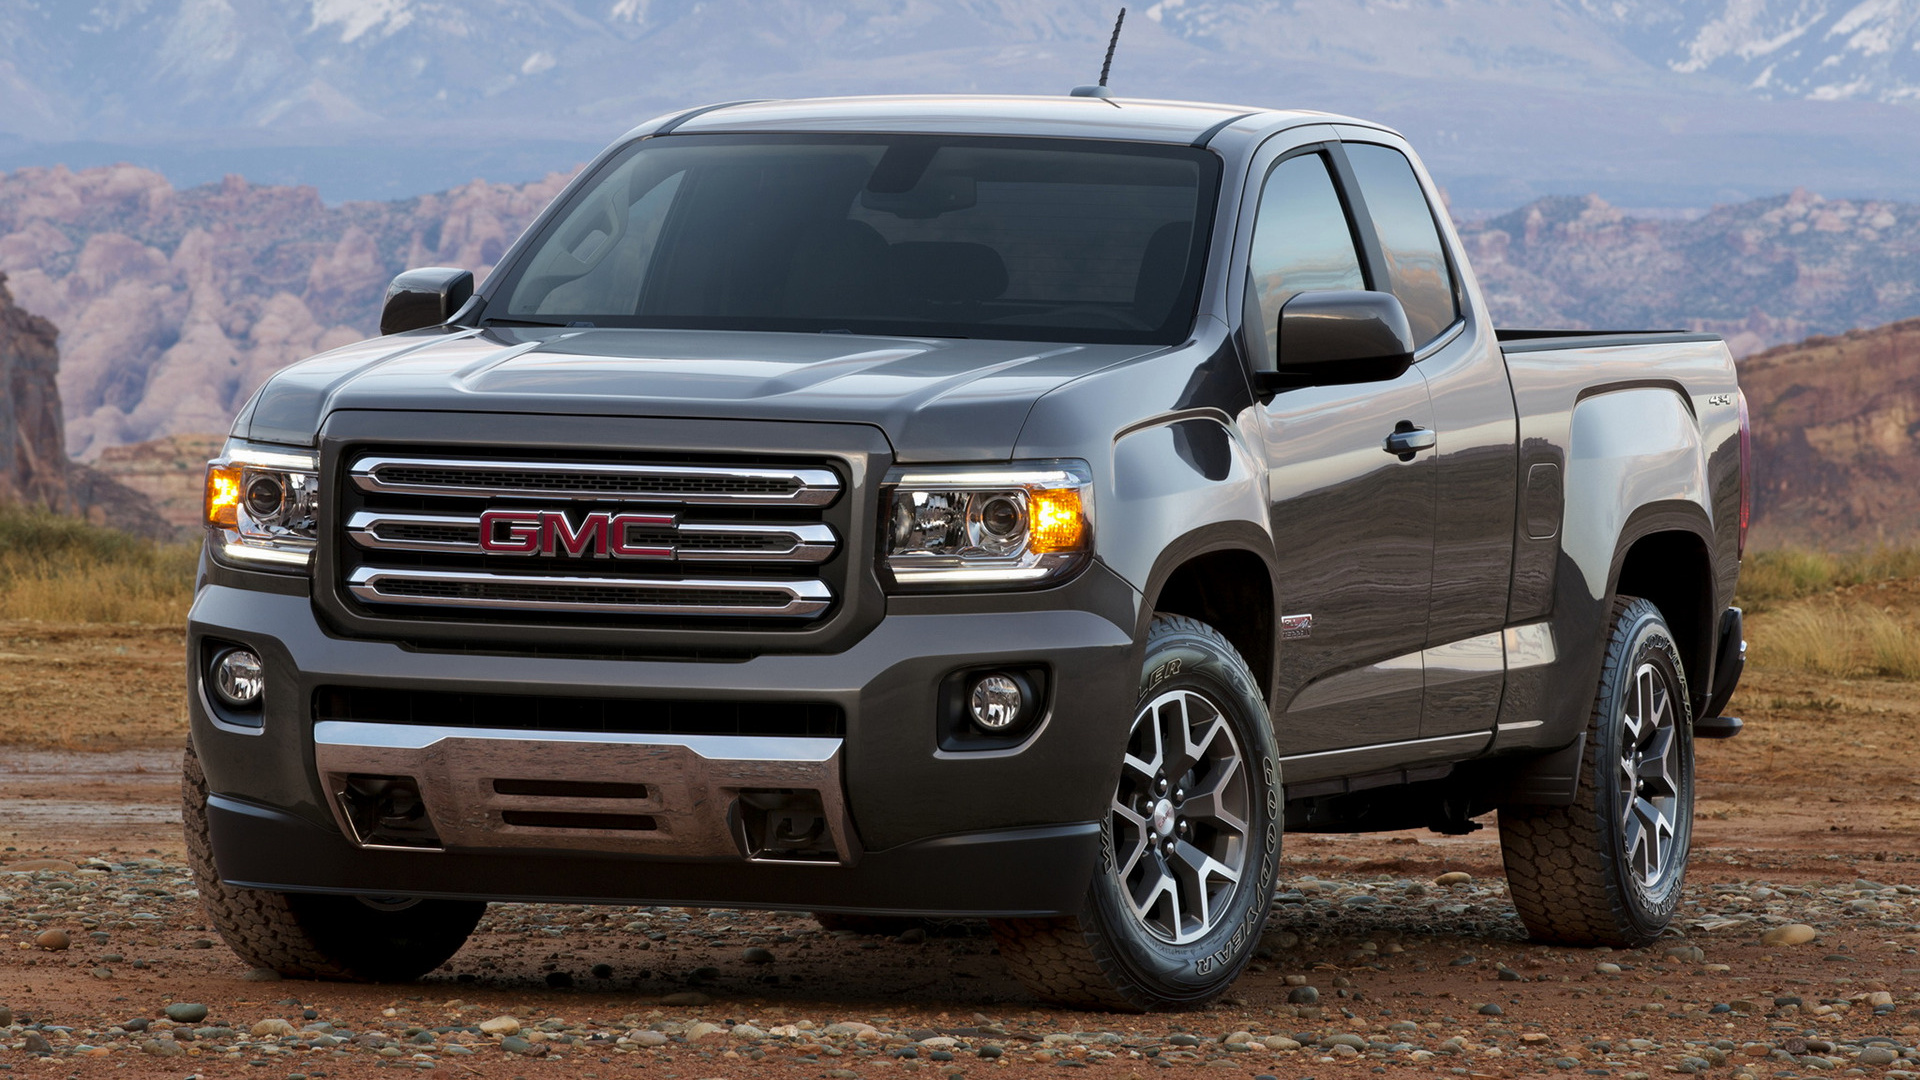 Gmc Terrain Denali >> GMC Canyon All Terrain Extended Cab (2015) Wallpapers and HD Images - Car Pixel